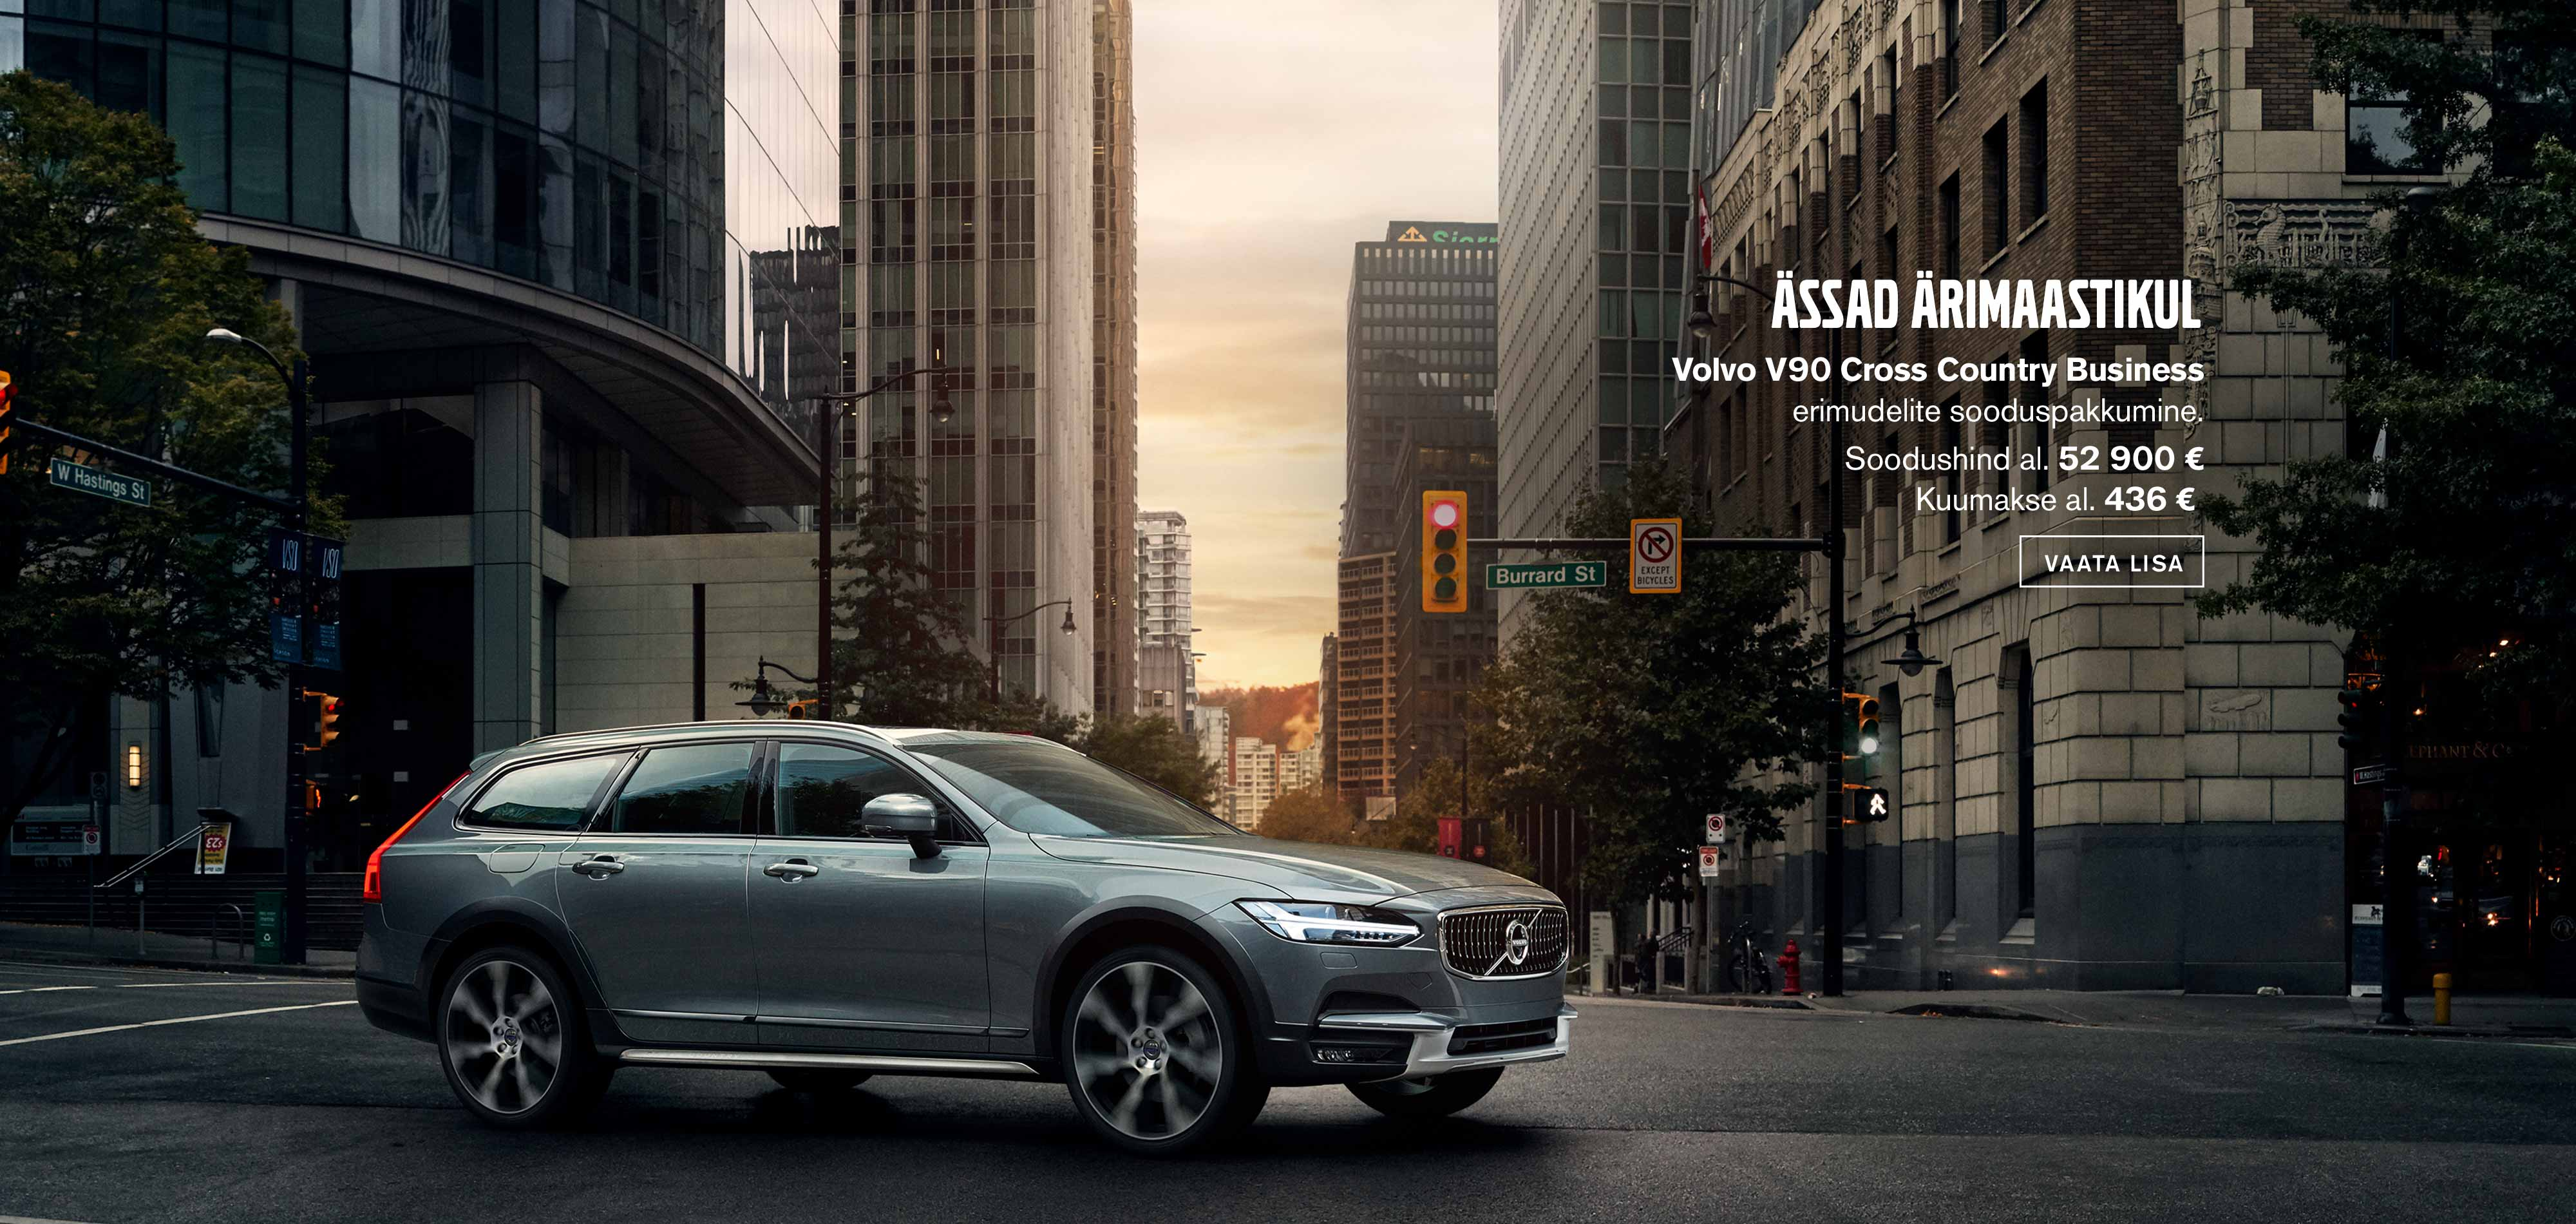 Volvo V90 Cross Country Business erimudelid